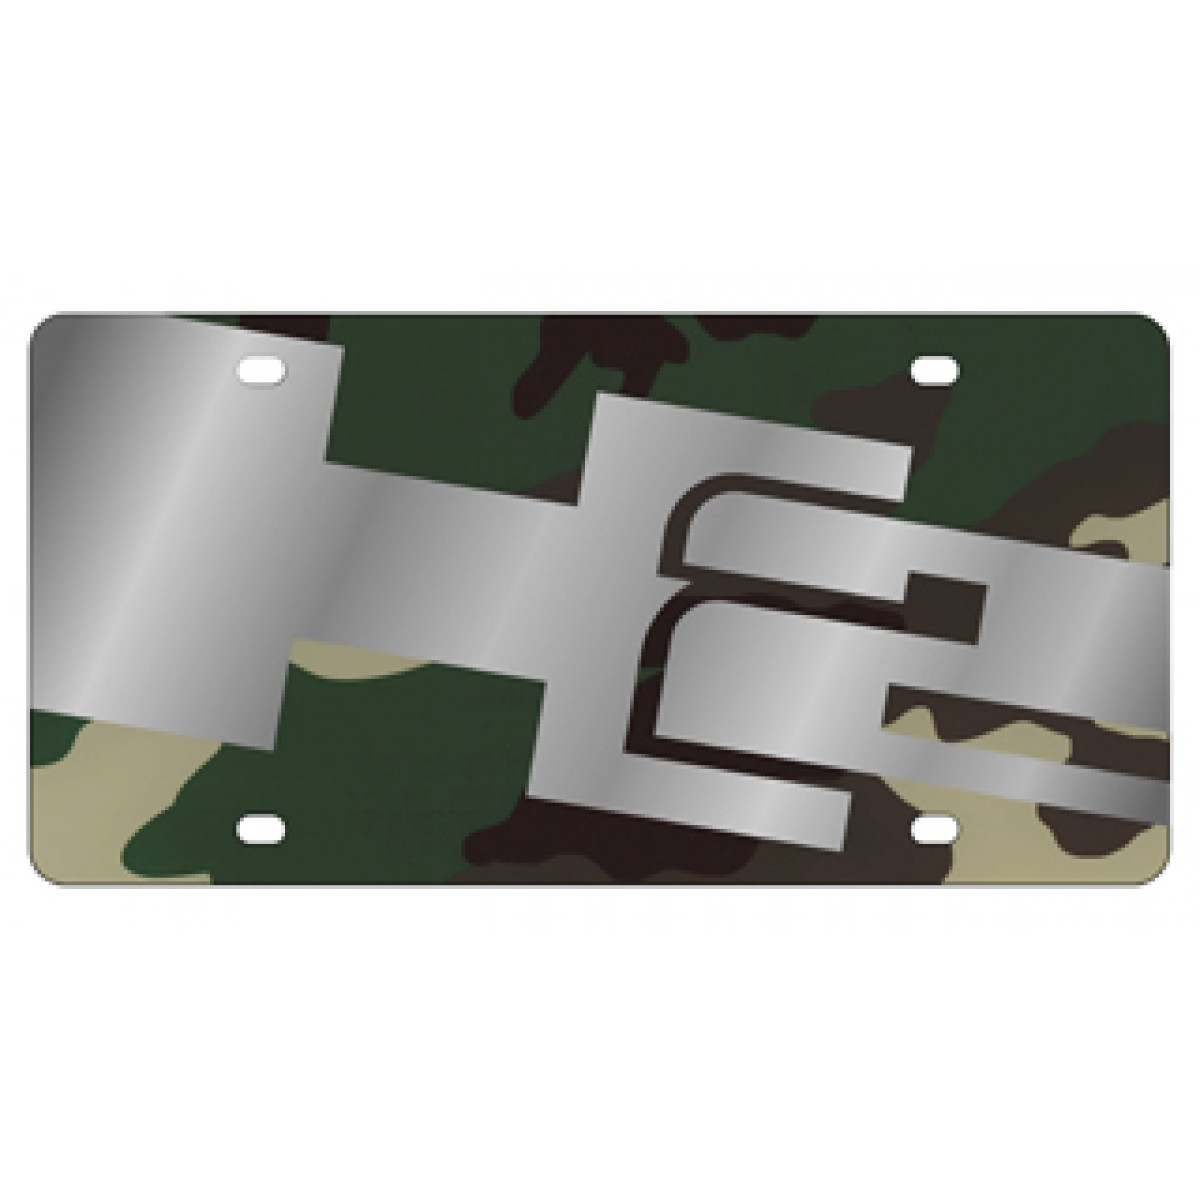 Auto Accessories Garage Military Discount Hossrods Hummer H2 License Plate Stamp Series Lazer Style